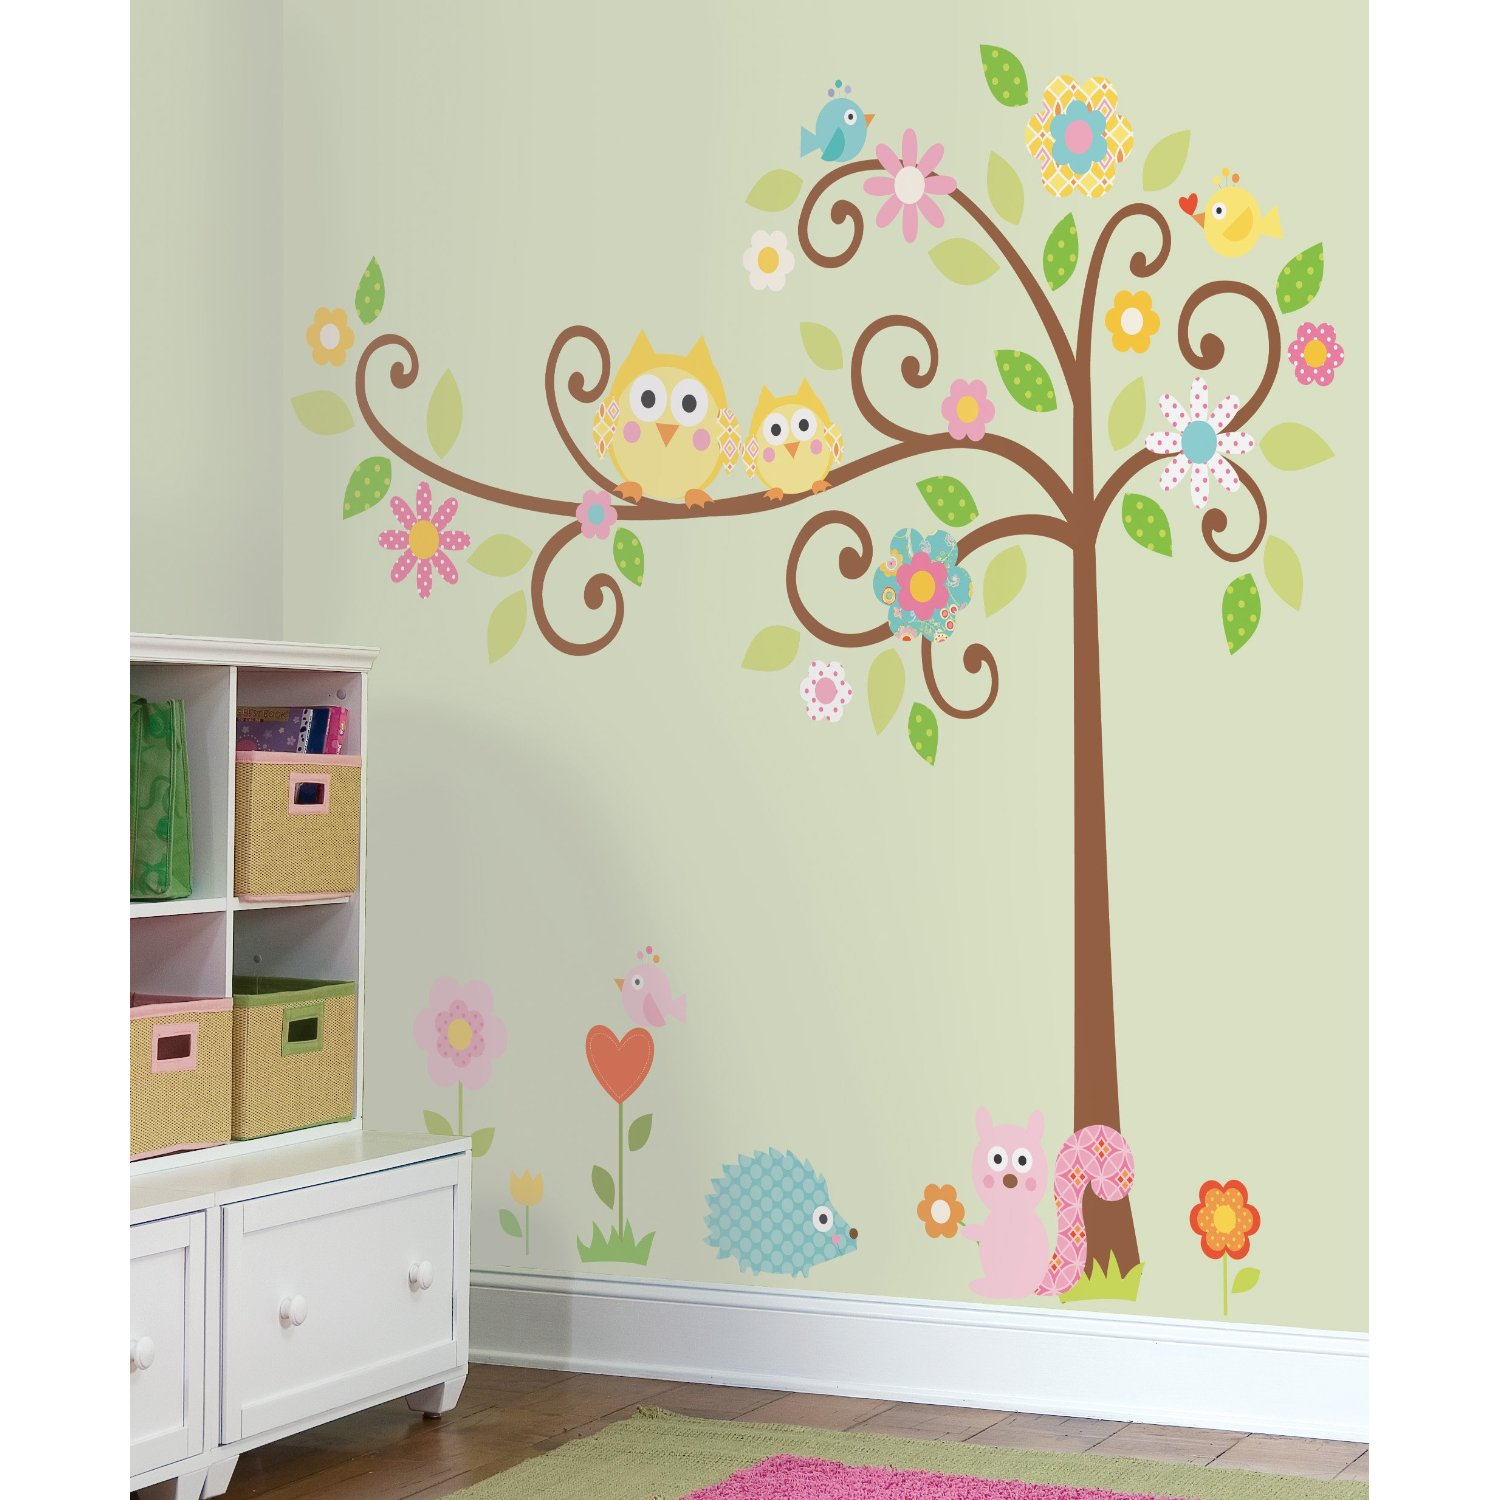 Great Room mates tree wall decal